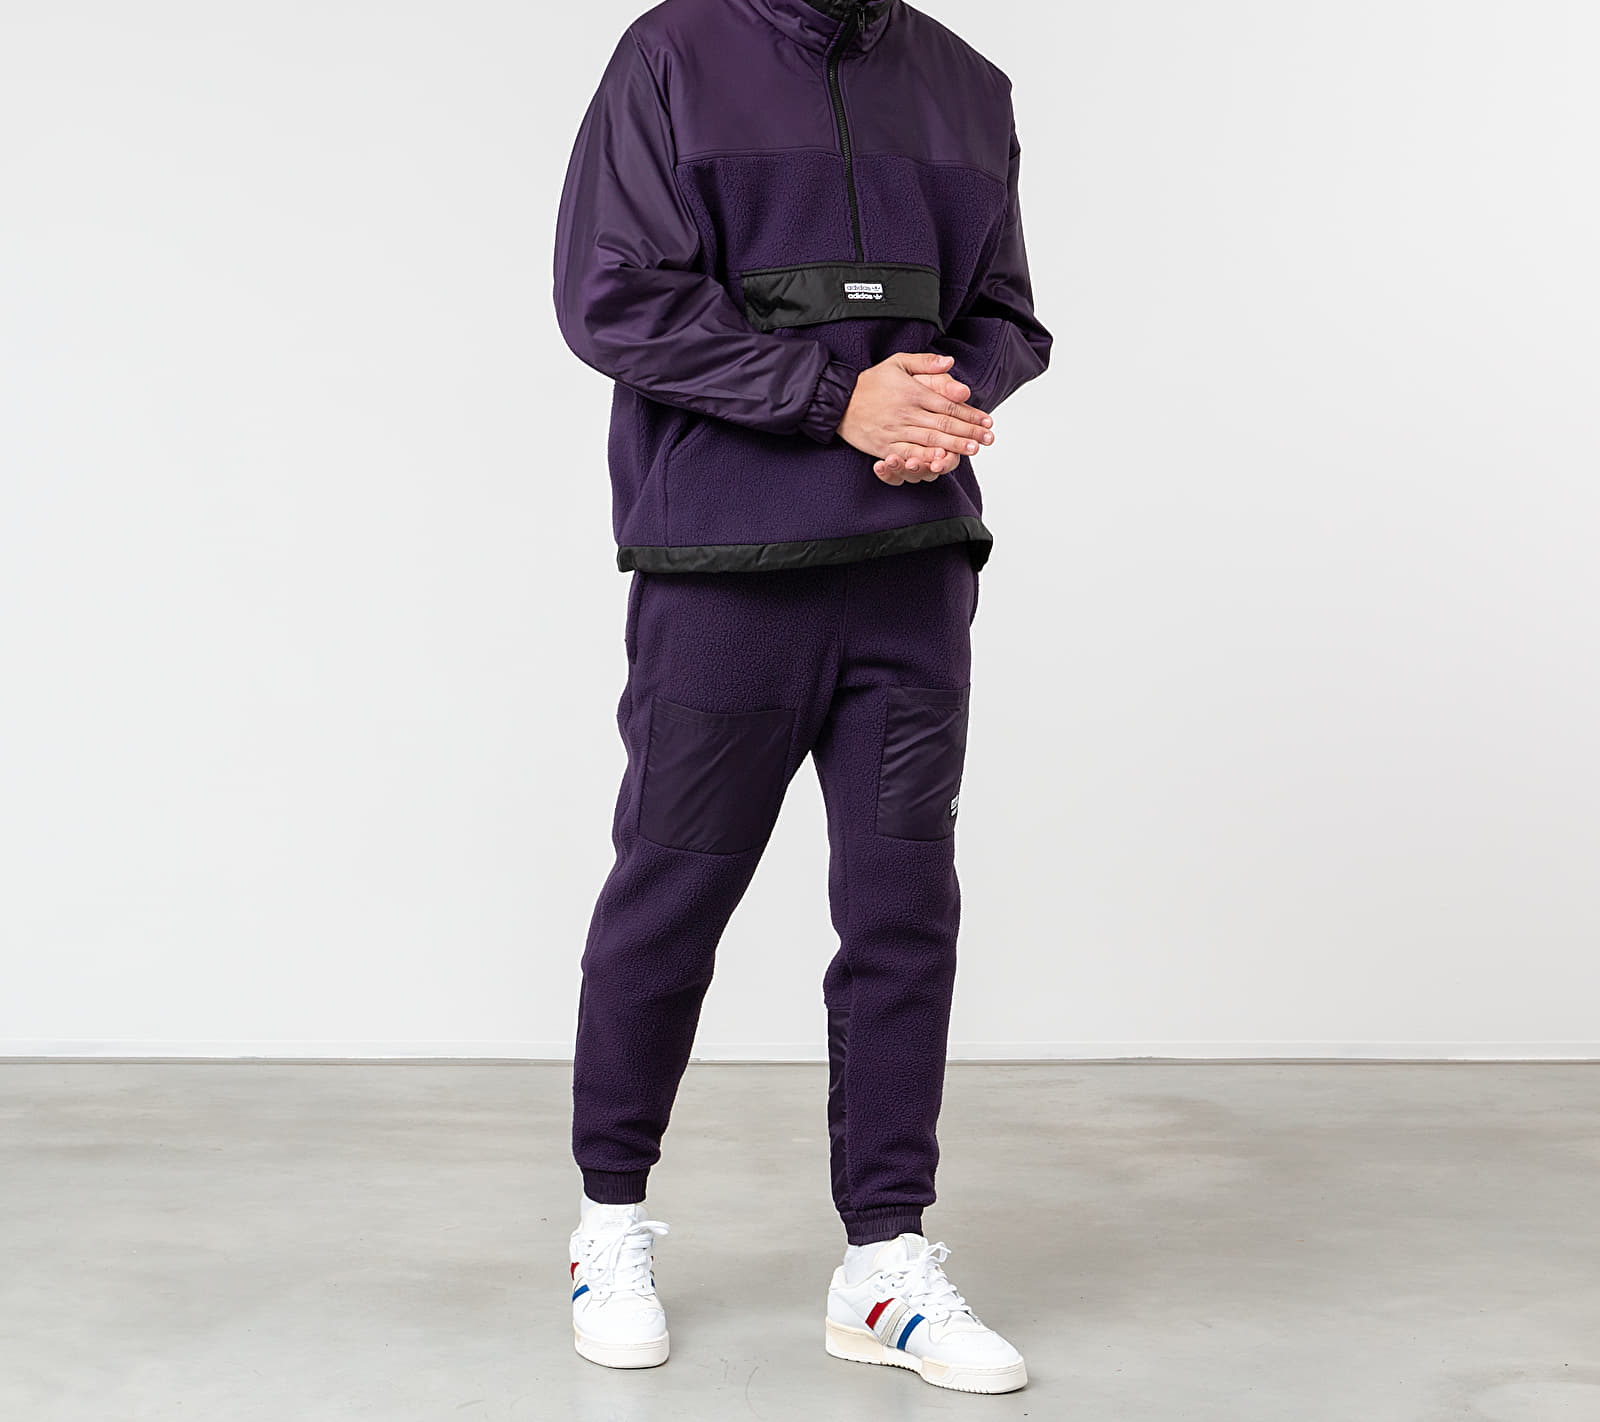 adidas R.Y.V. Lit Track Top Legend Purple